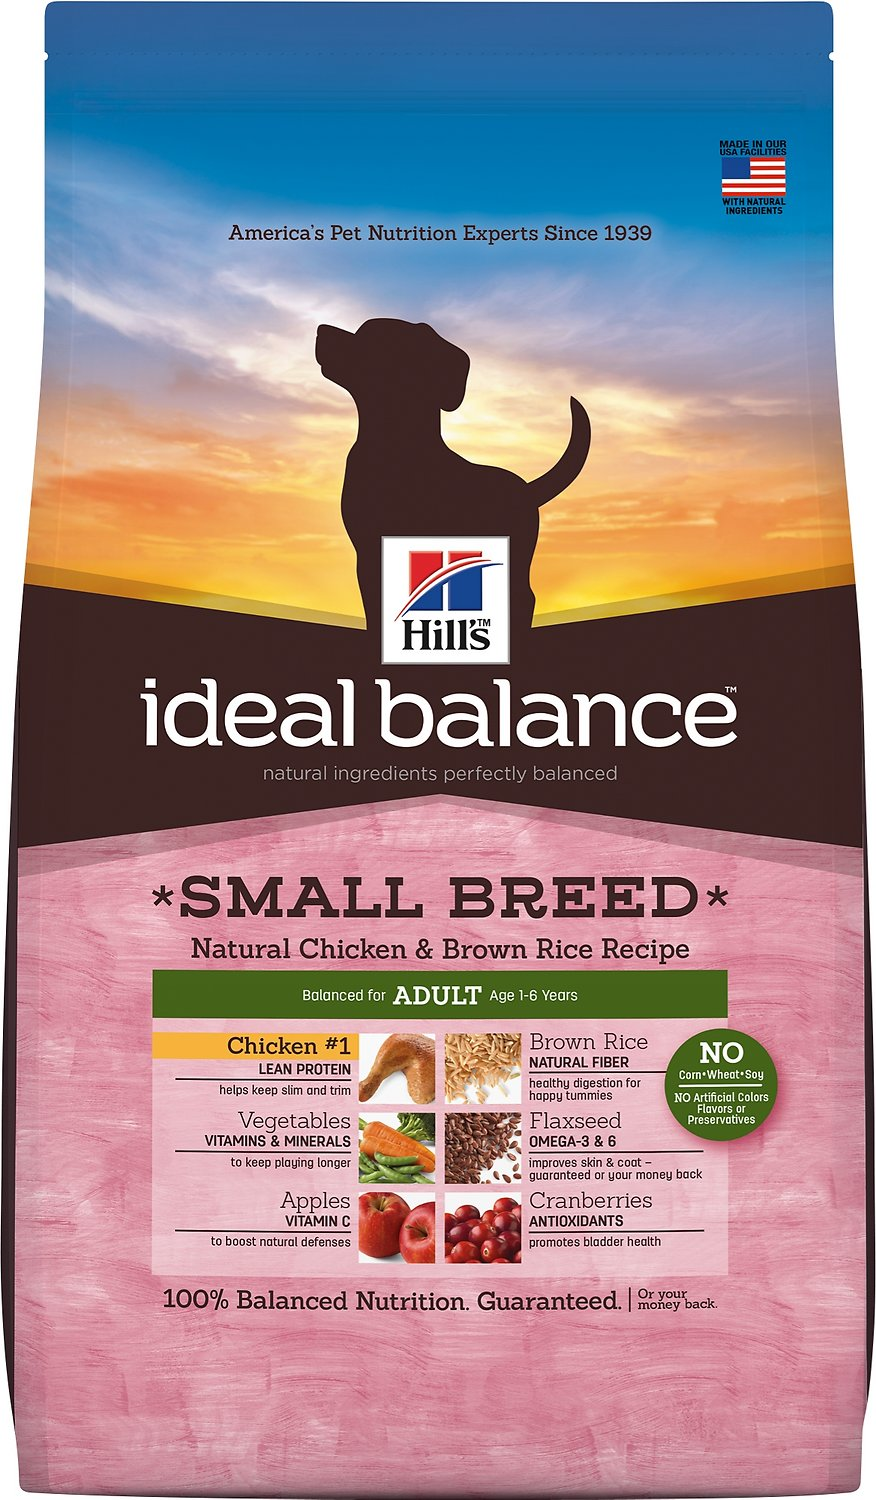 Hills Ideal Balance Small Breed Natural Chicken Brown Rice Recipe